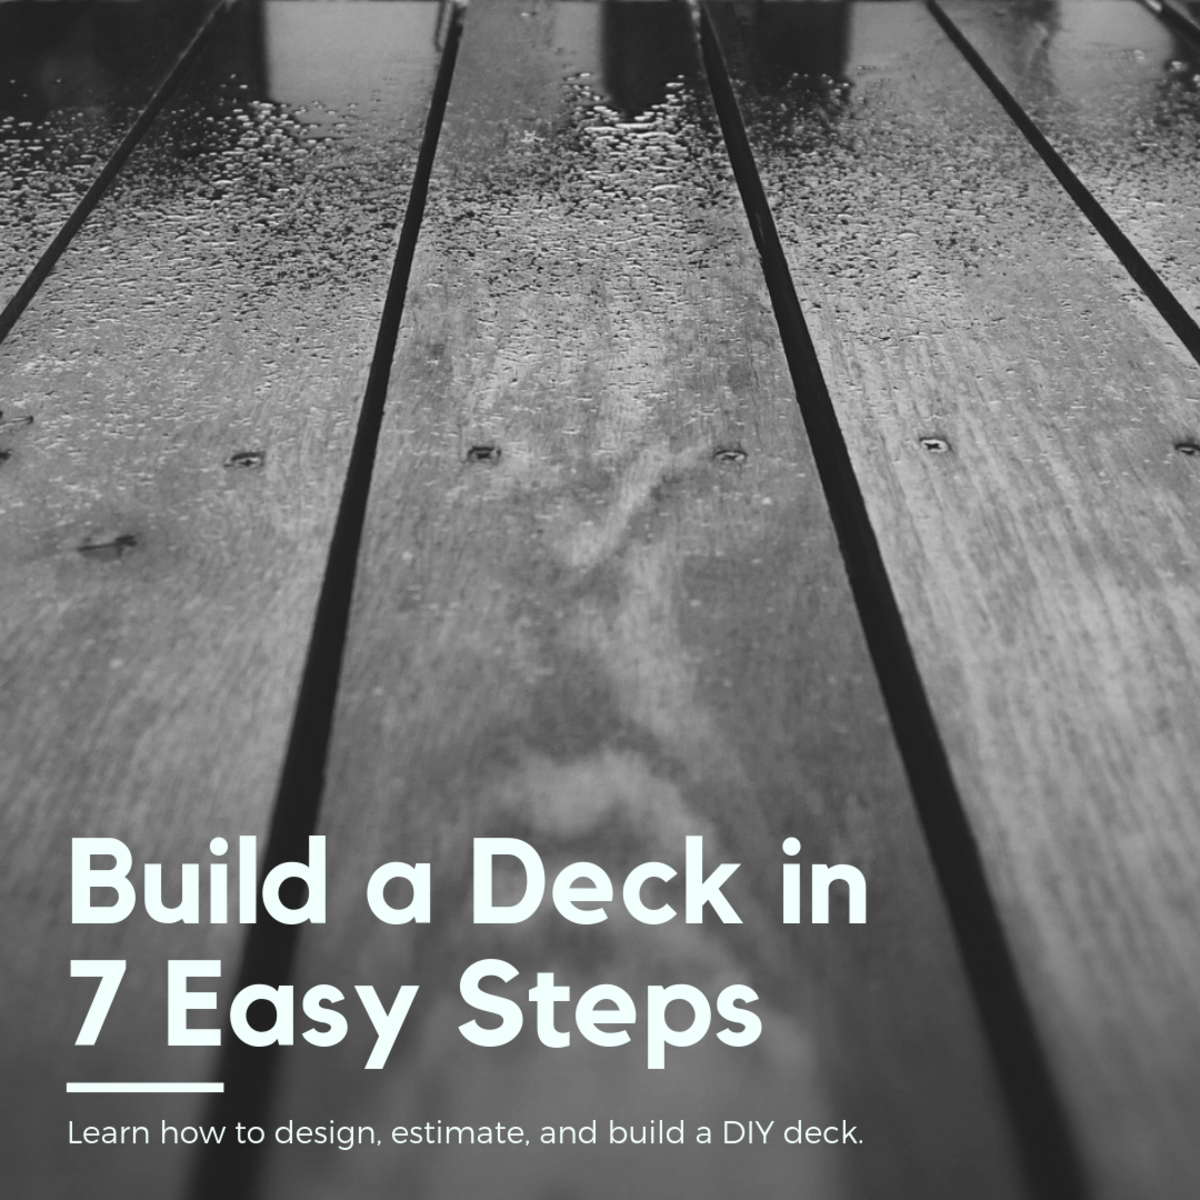 This article will break down the entire process of building your own deck in seven easy steps, including designing, estimating, and construction.